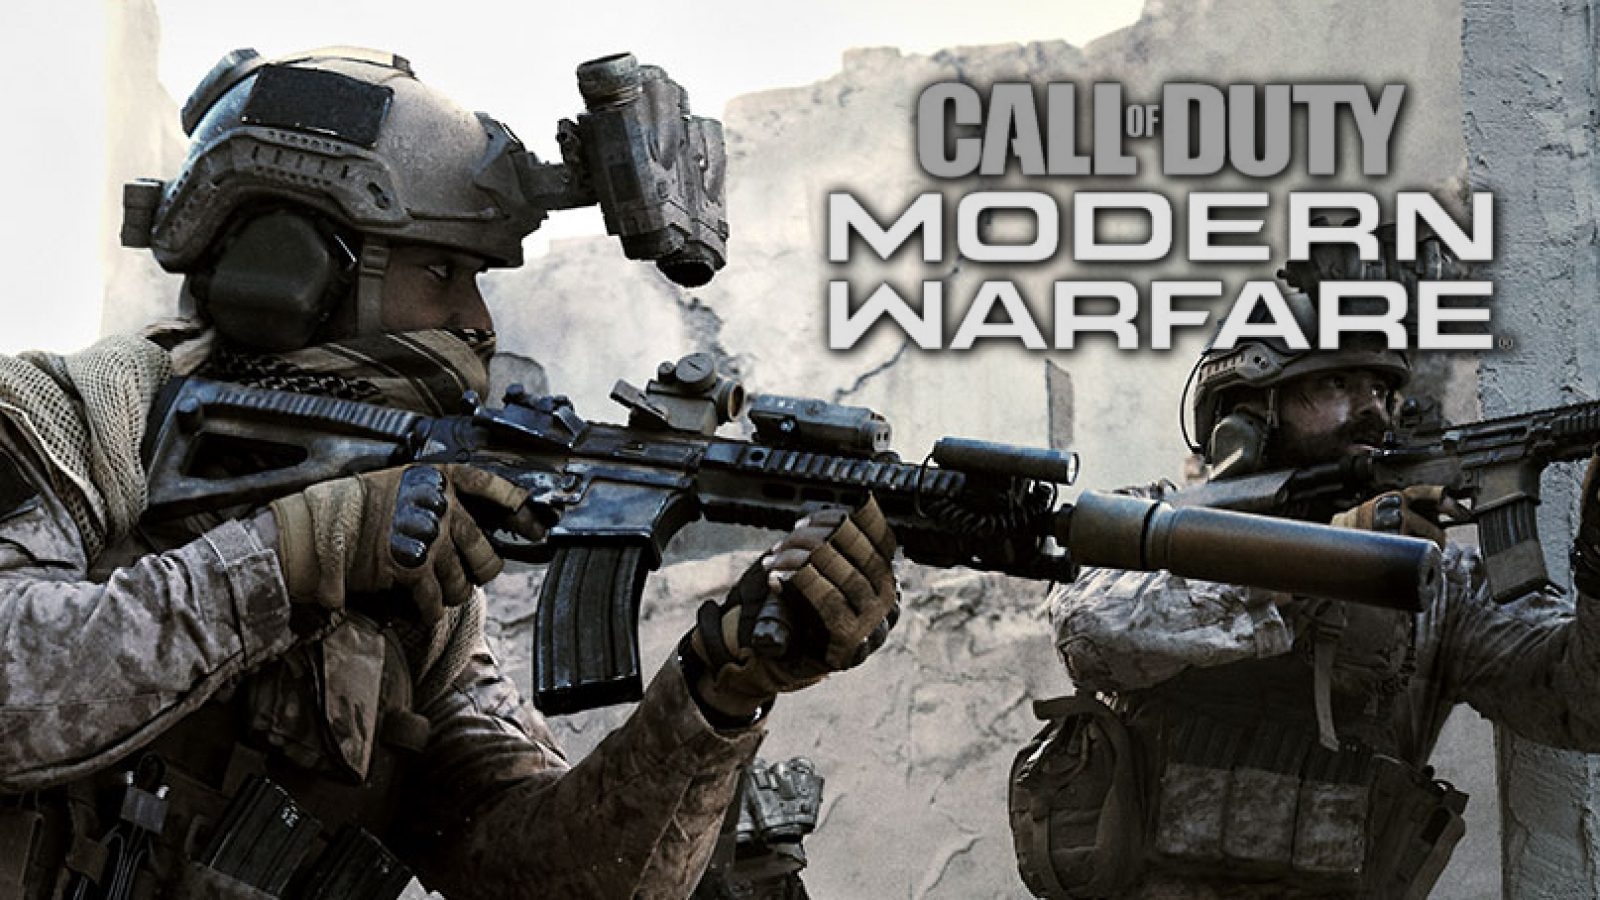 Call of Duty: Modern Warfare Weapons List, Stats, Gunsmith and Complete Gun Guide!